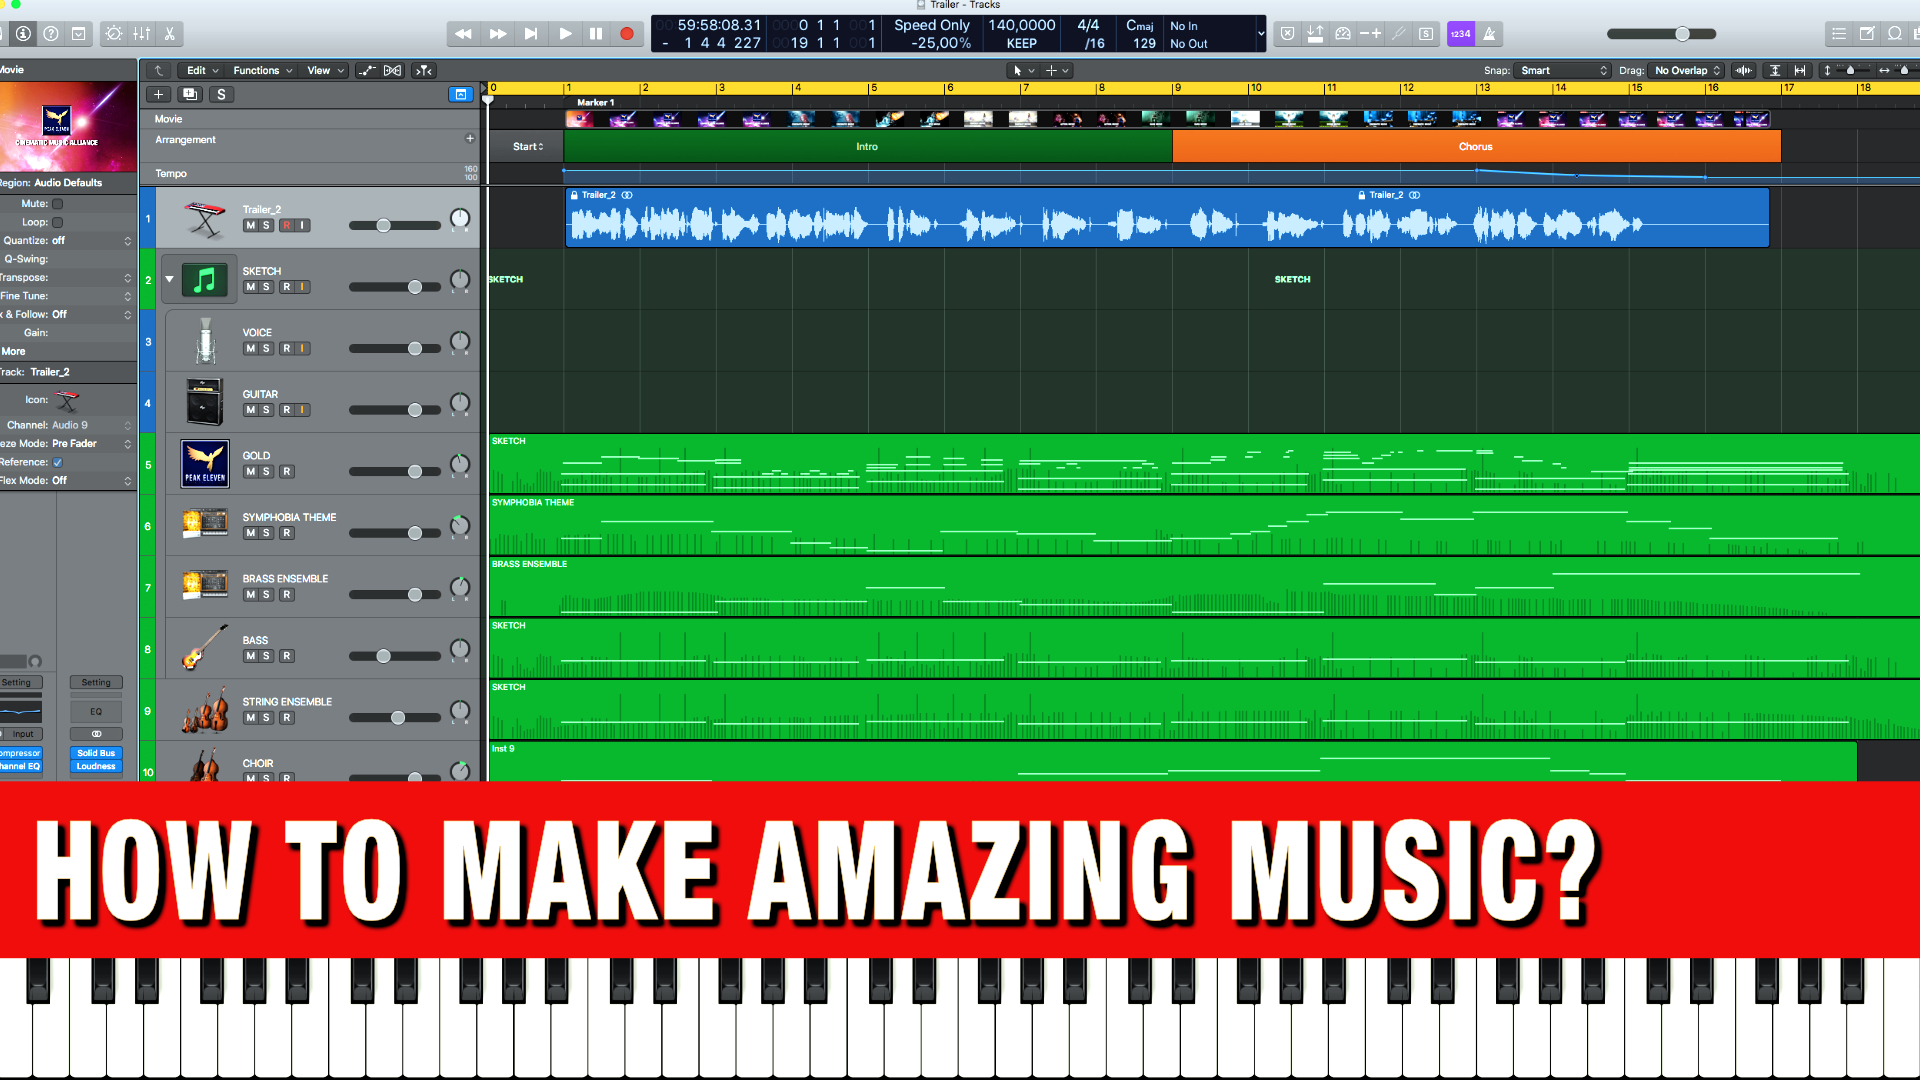 How to Improve the Quality of your Music